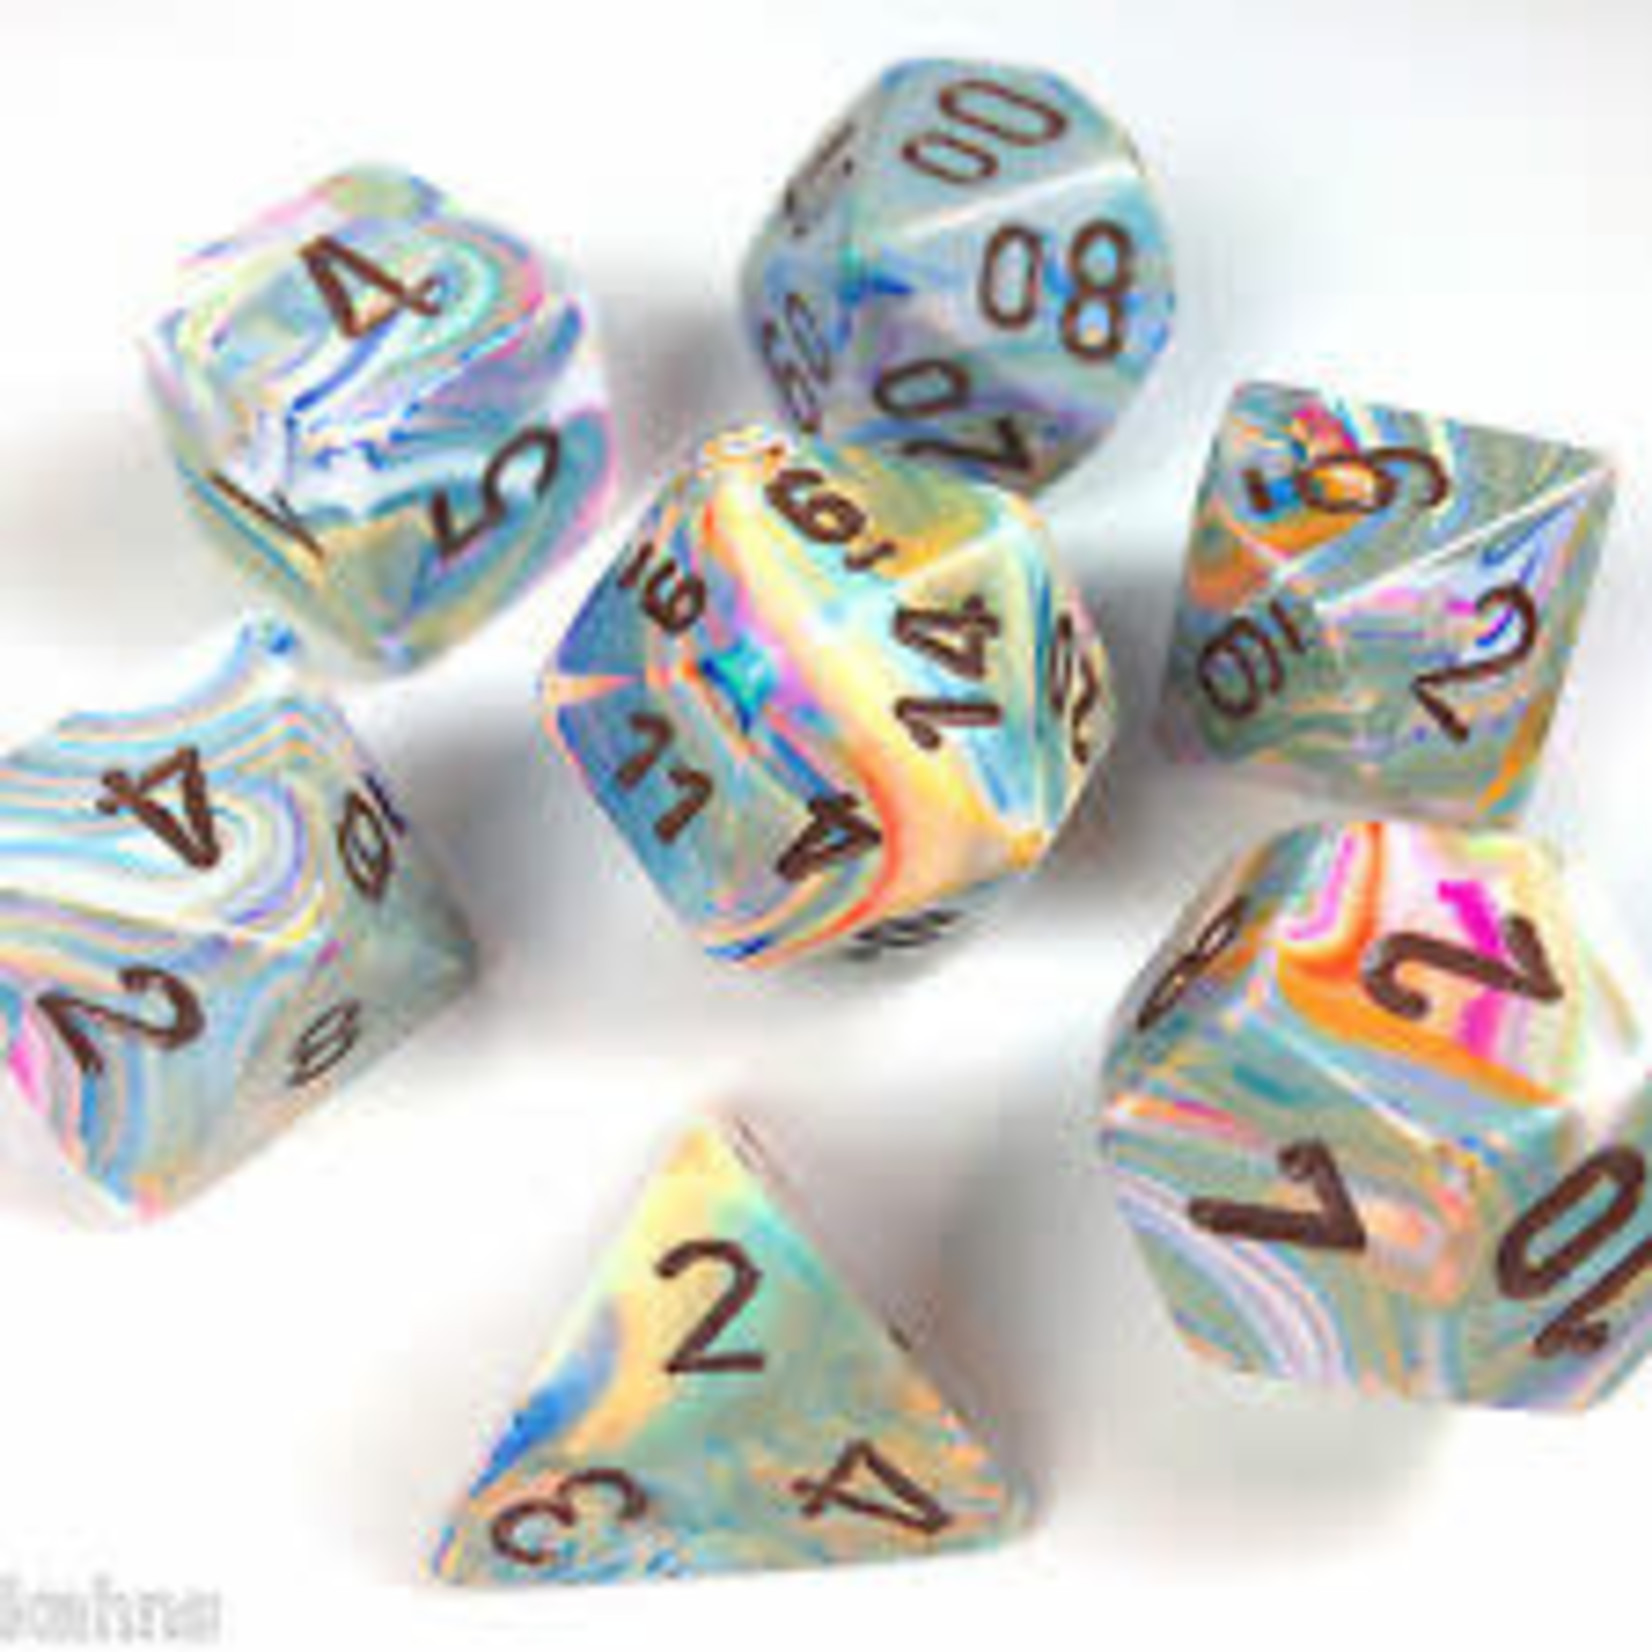 Chessex Dice: 7-Set Festive Vibrant with Brown Numbers (CHX)